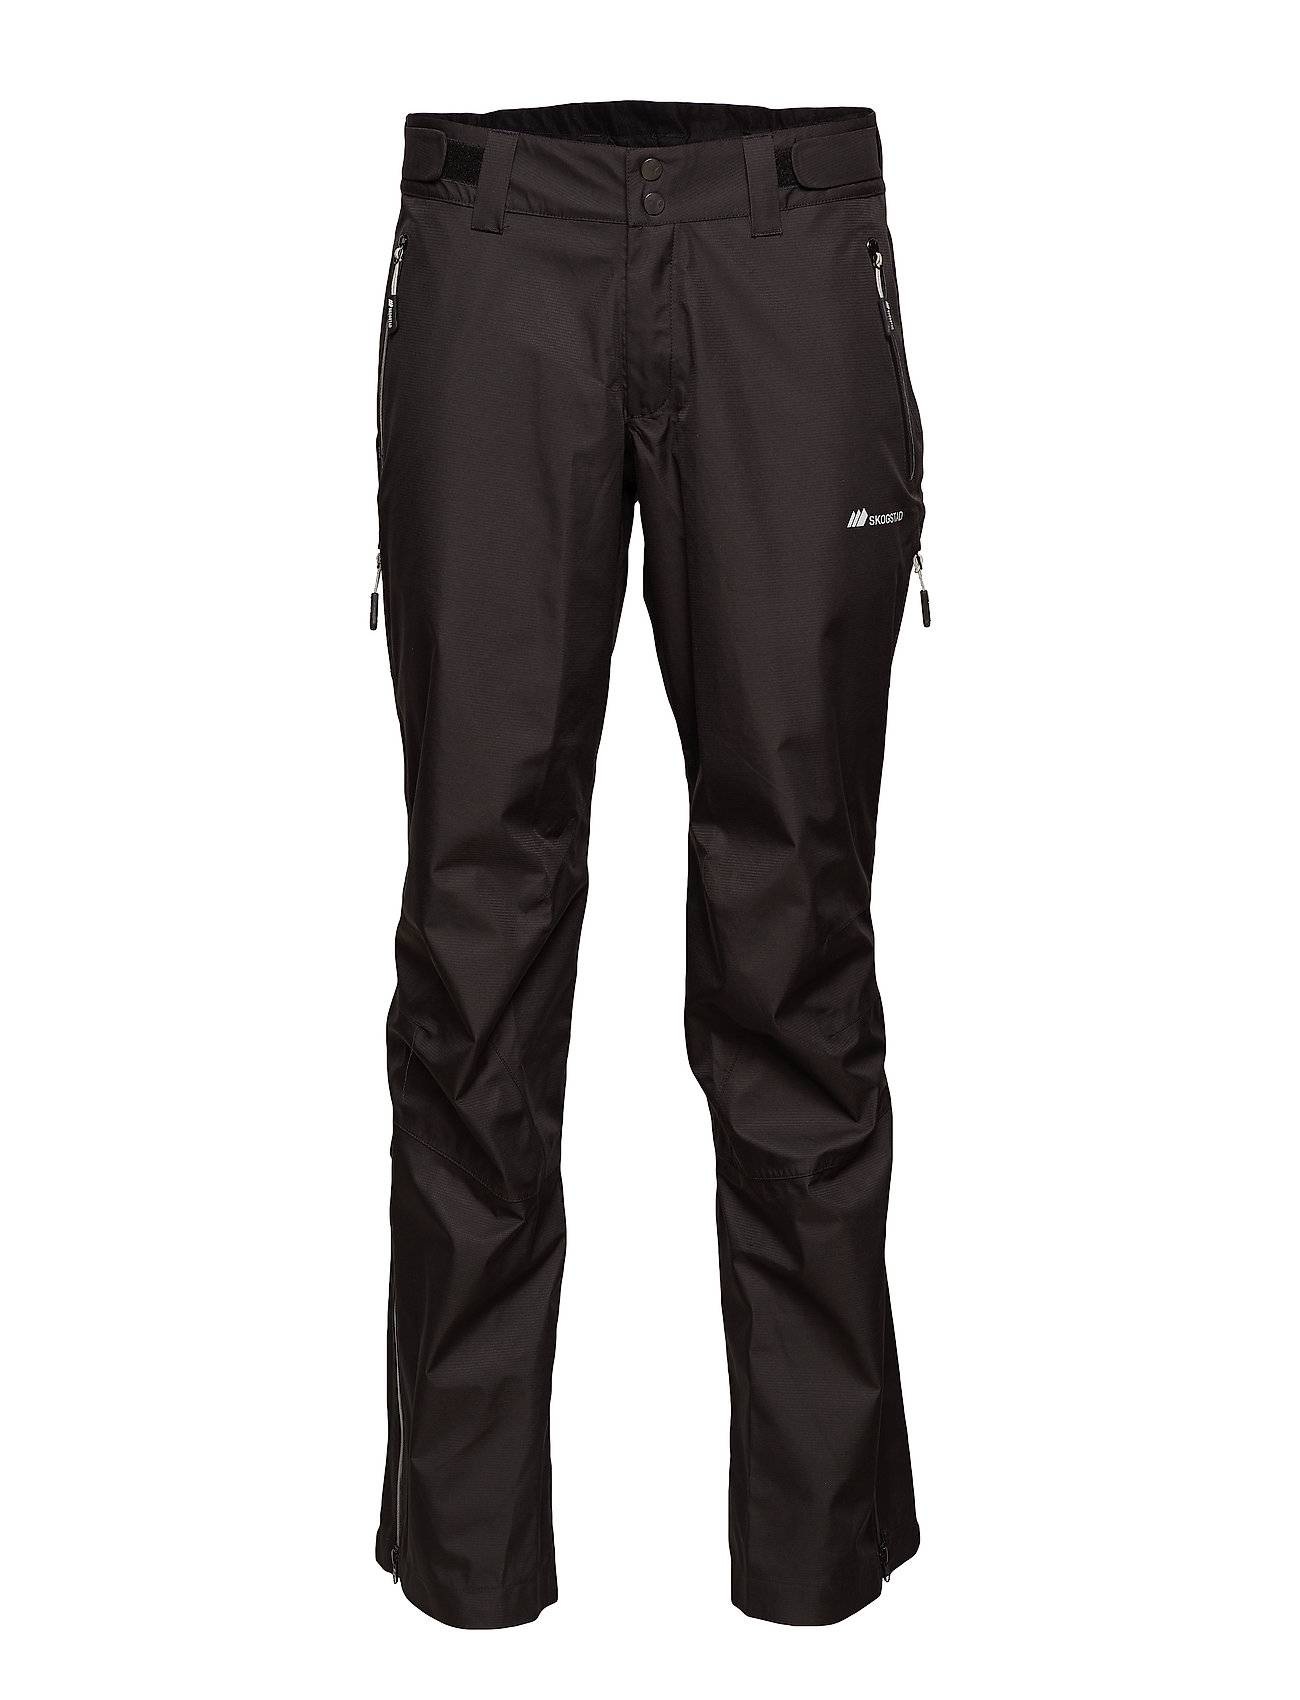 Skogstad Horgi 3-Layer Technical Shell Trouser Sport Pants Musta